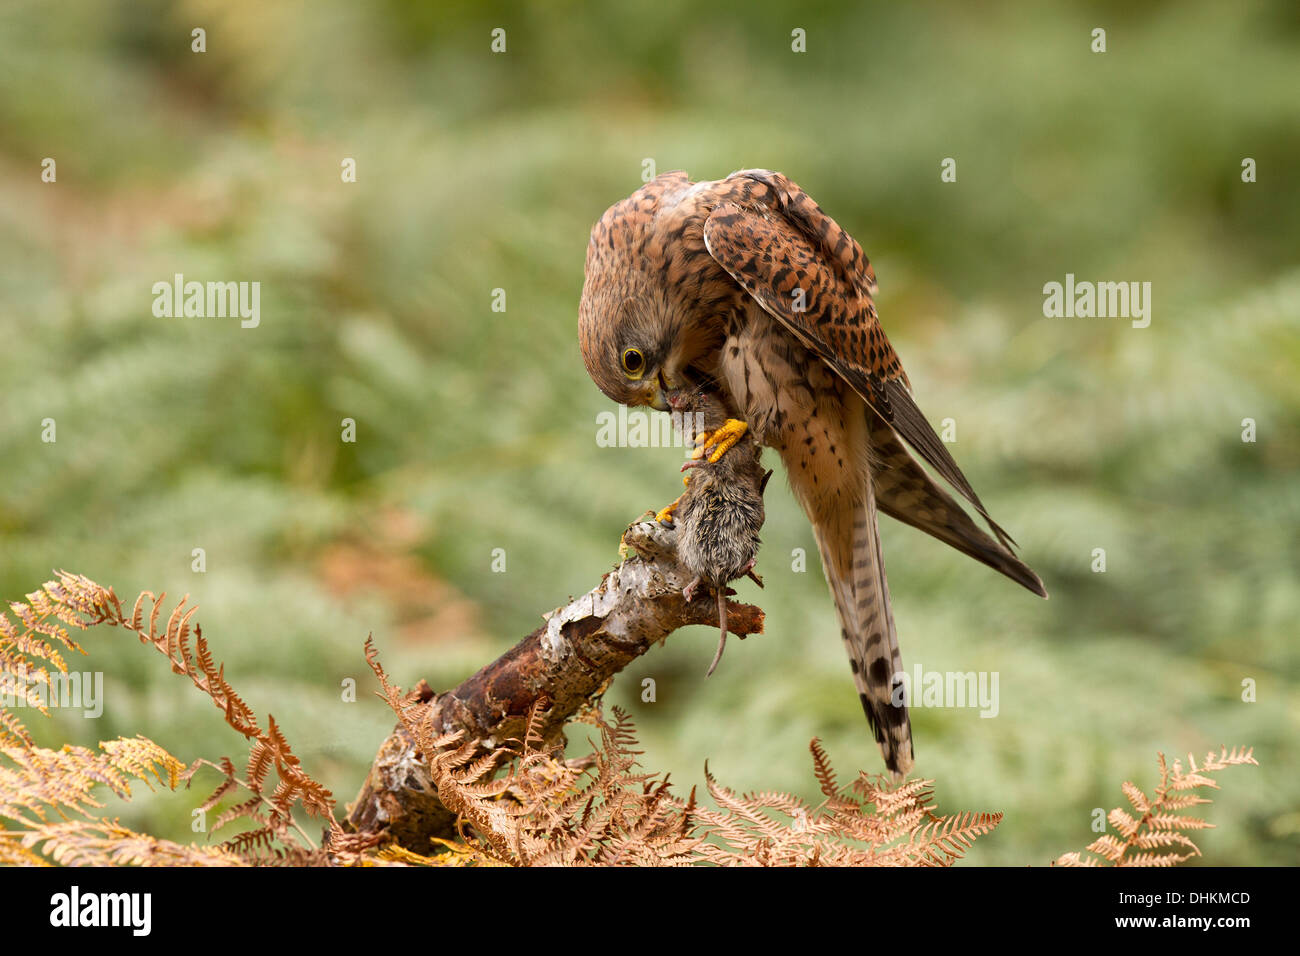 Kestrel, Falco tinnunculus with its prey, in bracken - Stock Image